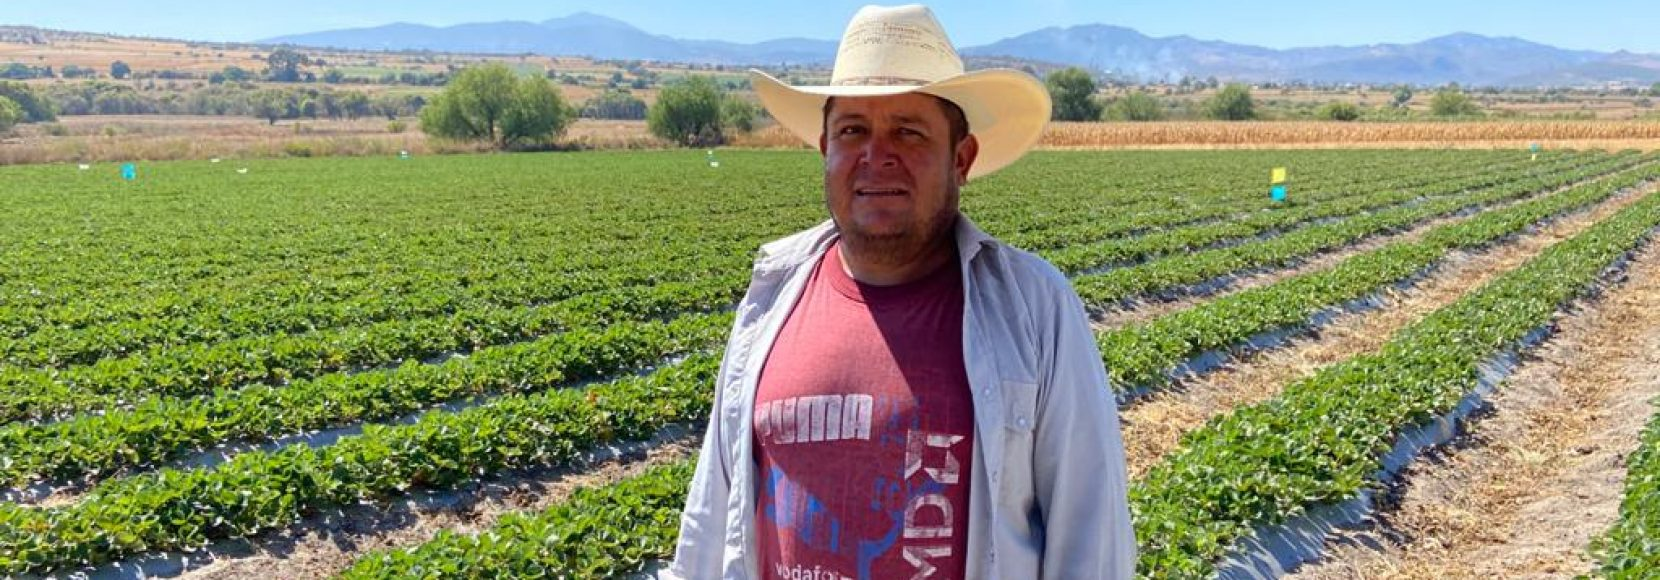 Ramiro Silva is a strawberry farmer in central Mexico